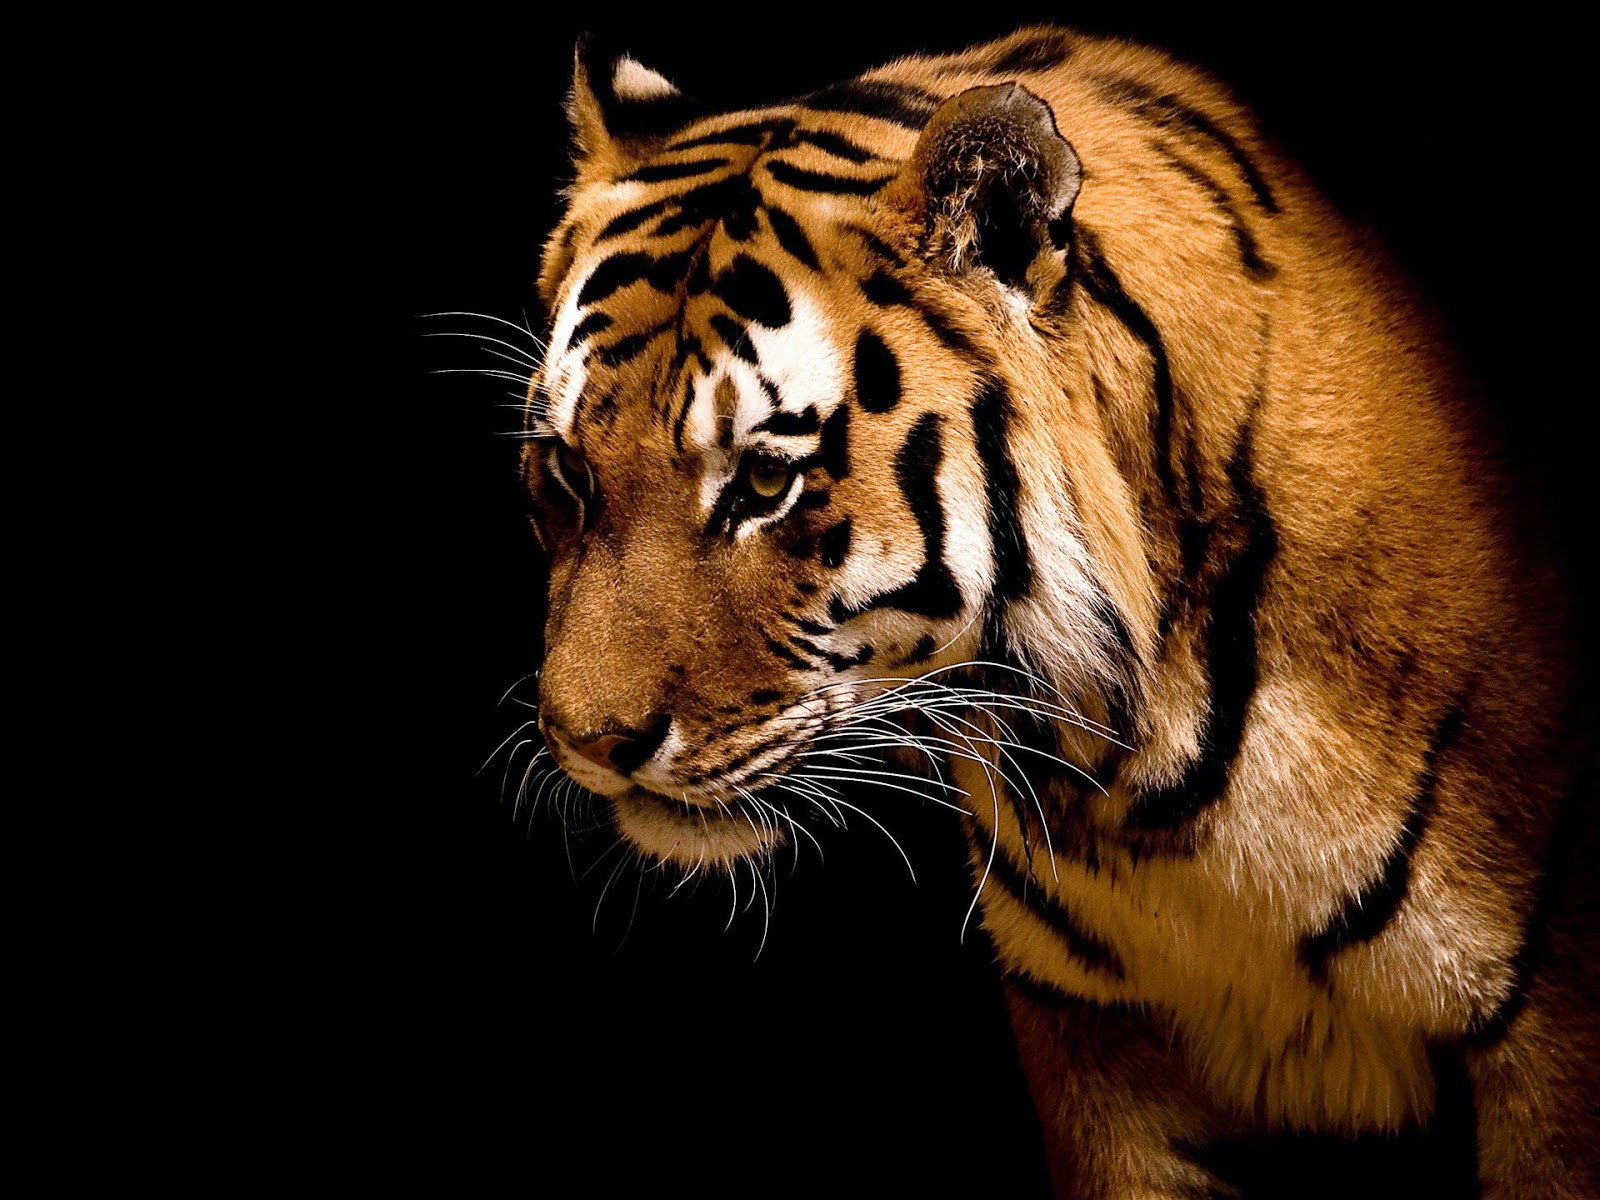 Cool Wallpapers Hd Hd Wallpapers Tiger Full Hd Wallpapers